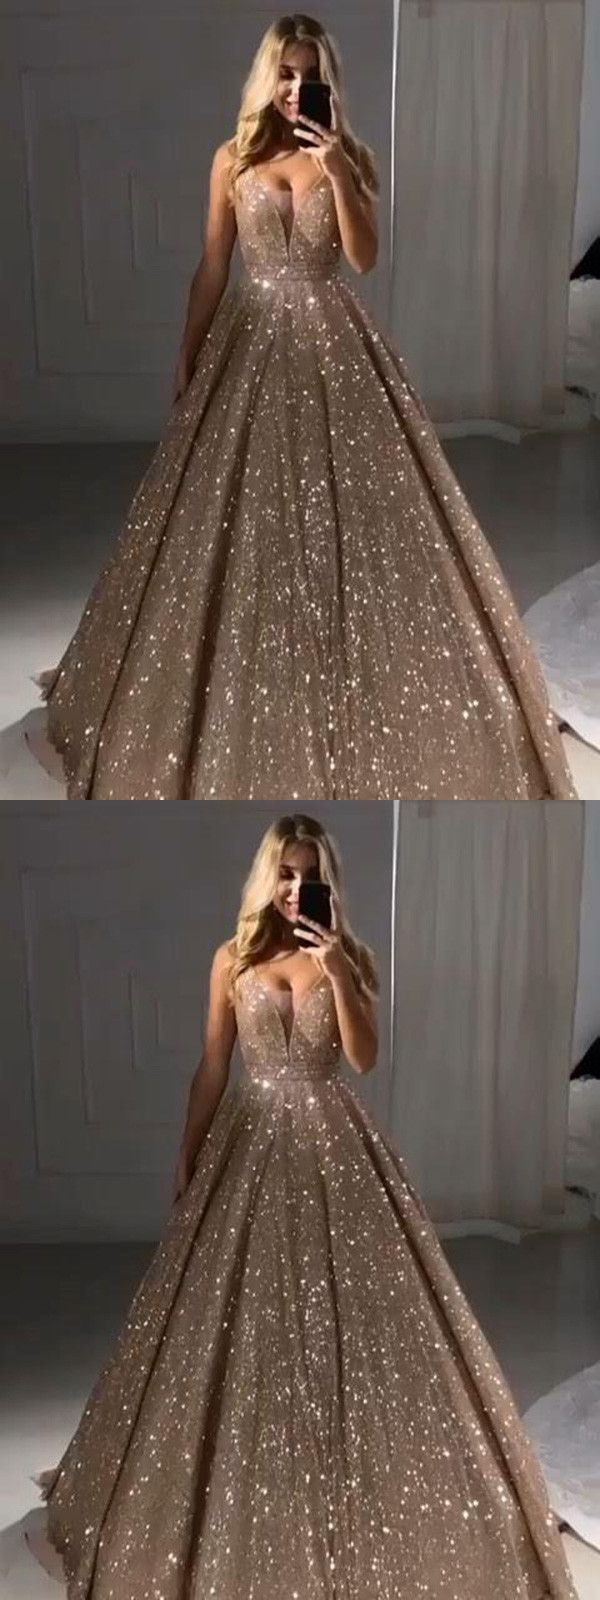 Ball Gown Gold Prom Dress Plus Size Cheap African Prom Dress # VB3580